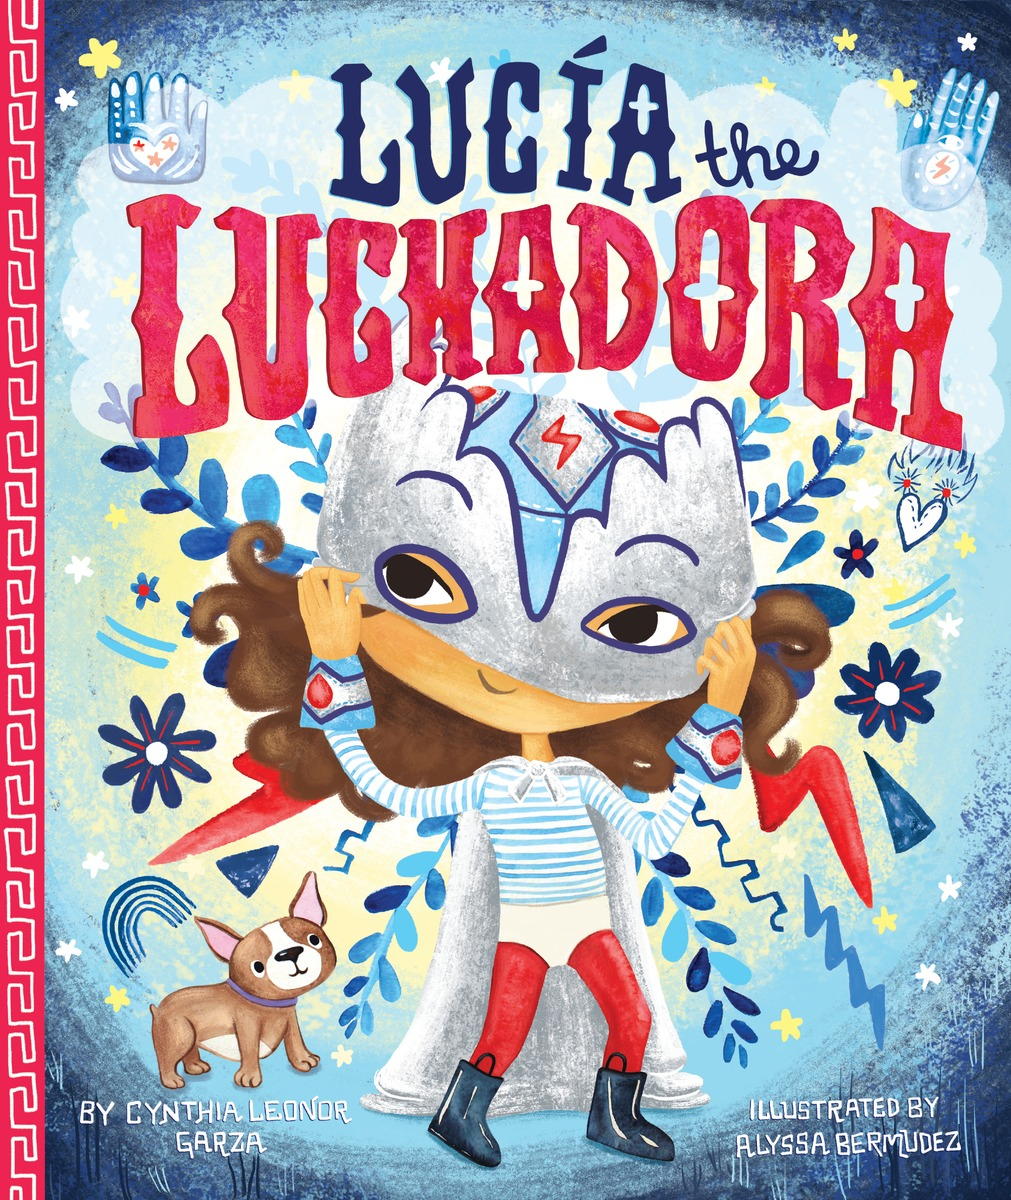 Sunday Story Time with Cynthia Leonor Garza (Author of Lucía the Luchadora)